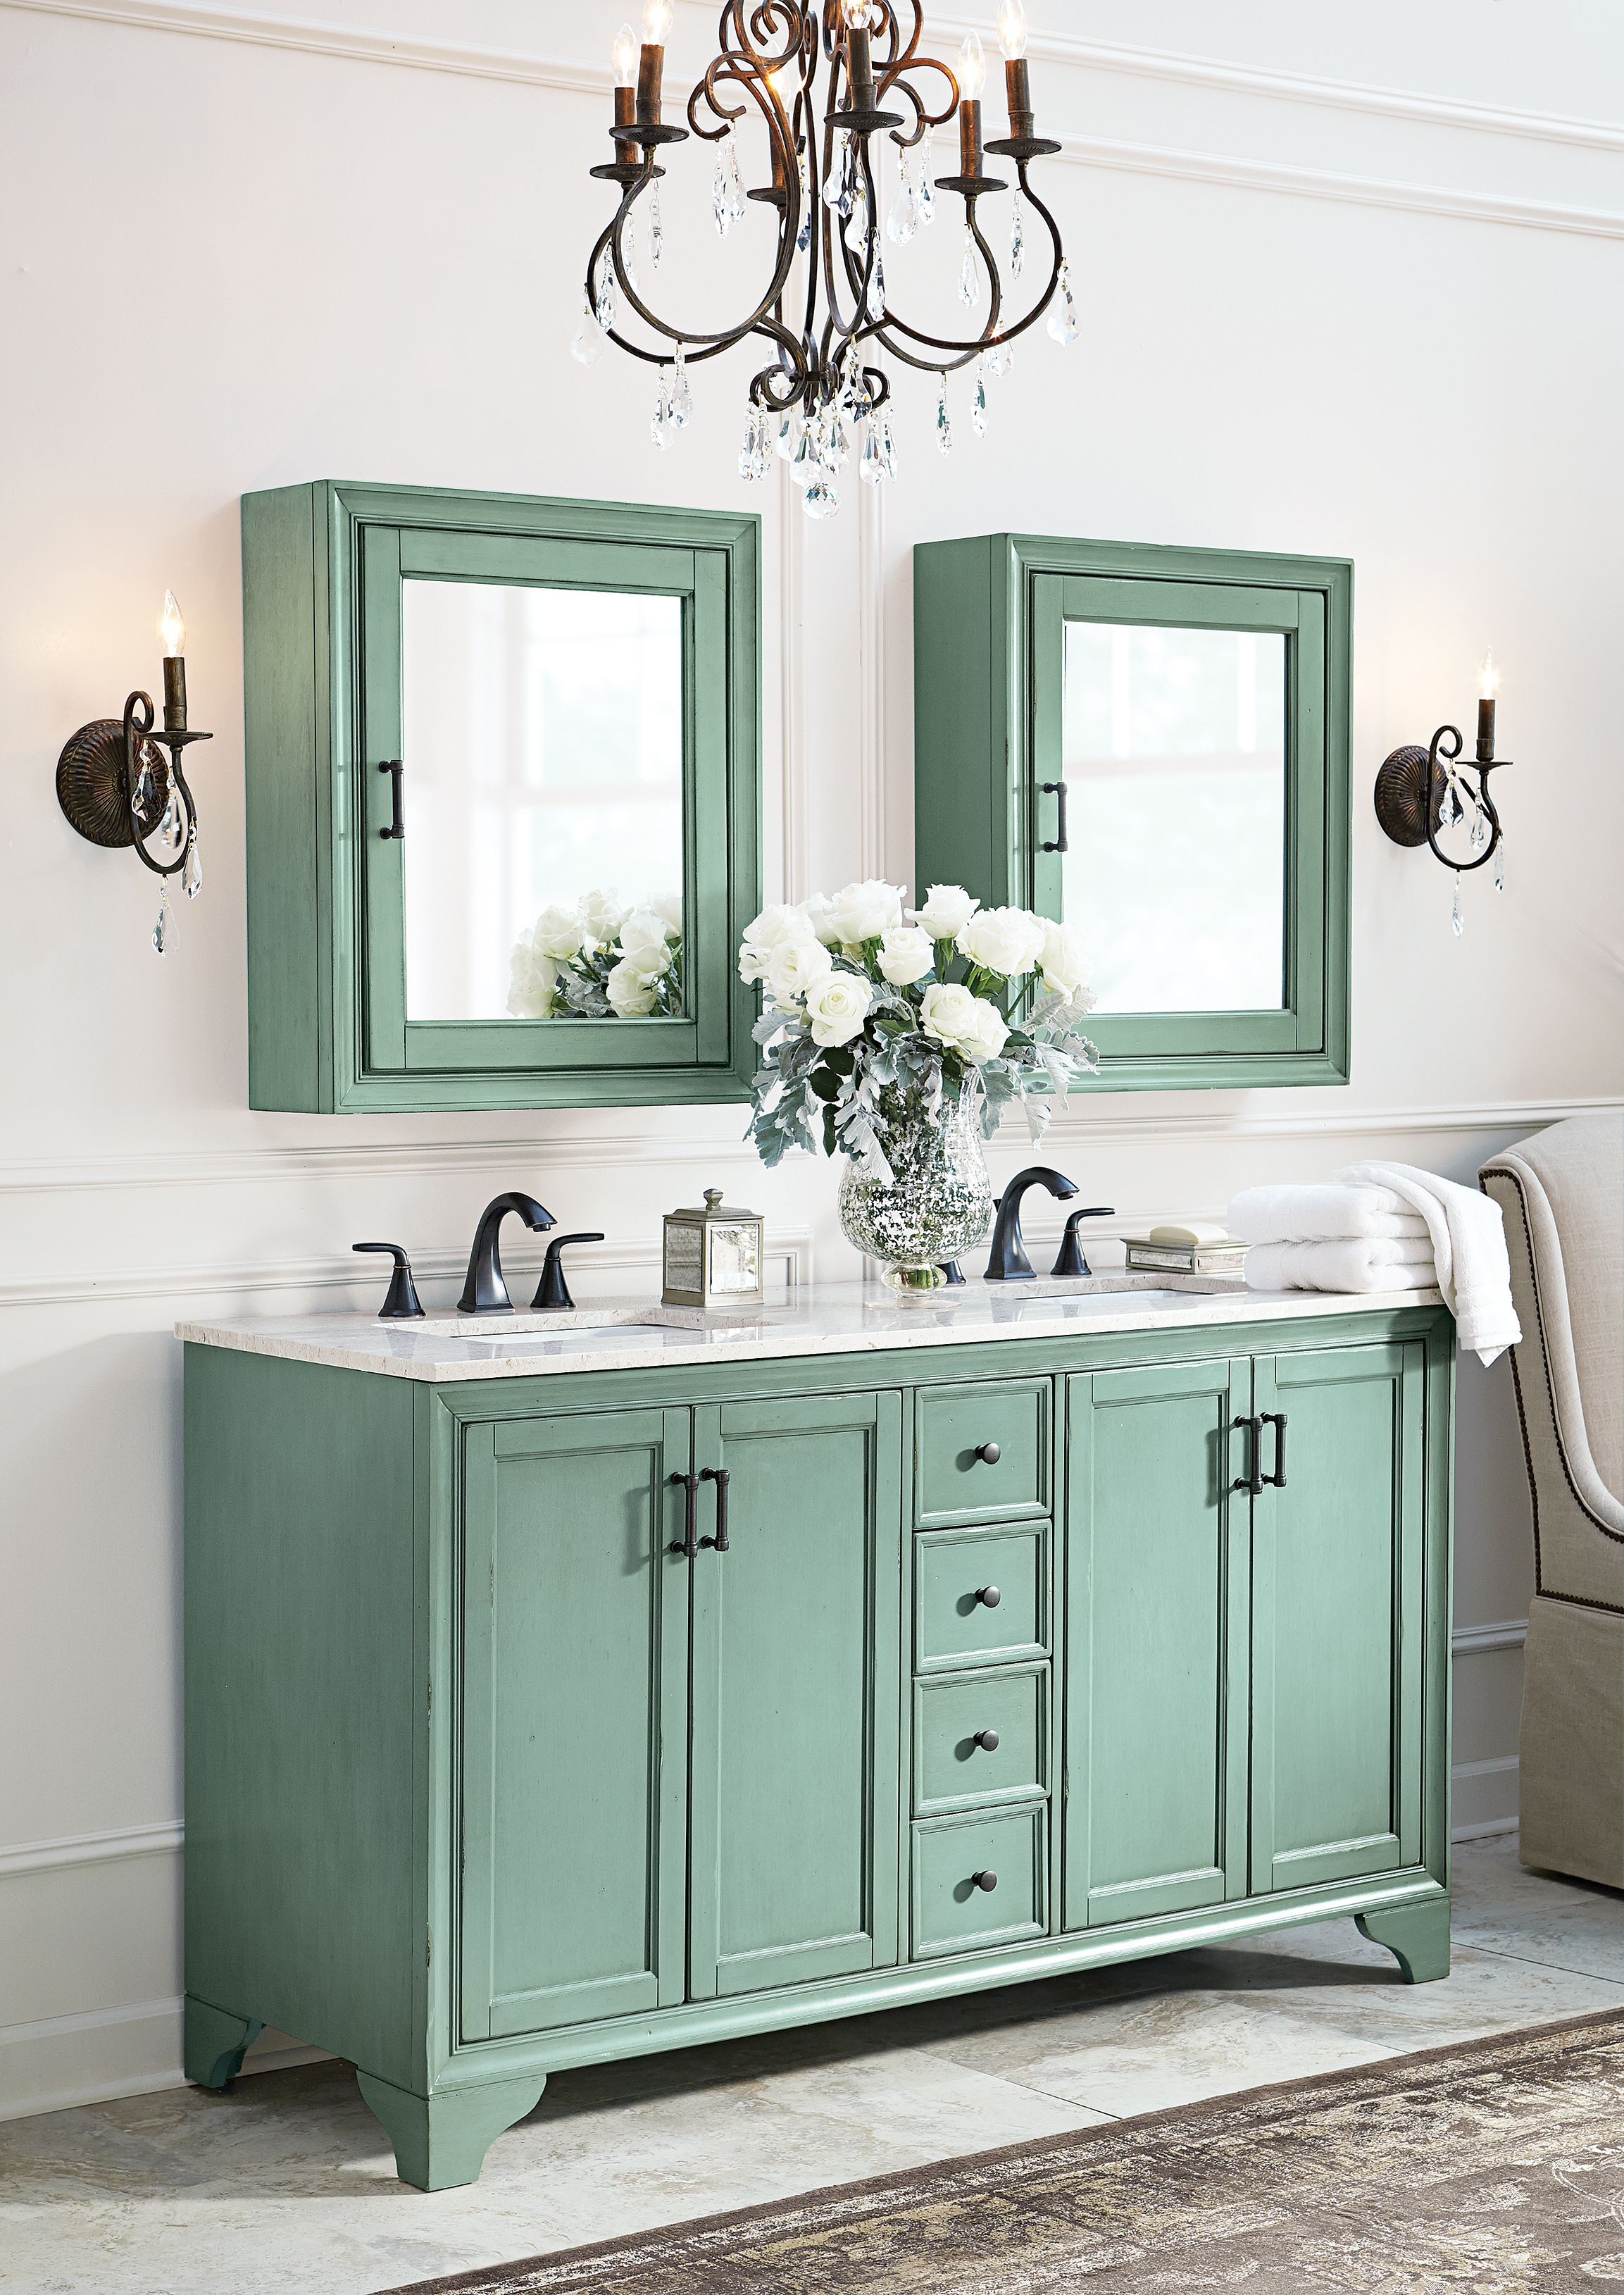 Can't Get Enough Of This Beauty. HomeDecorators.com